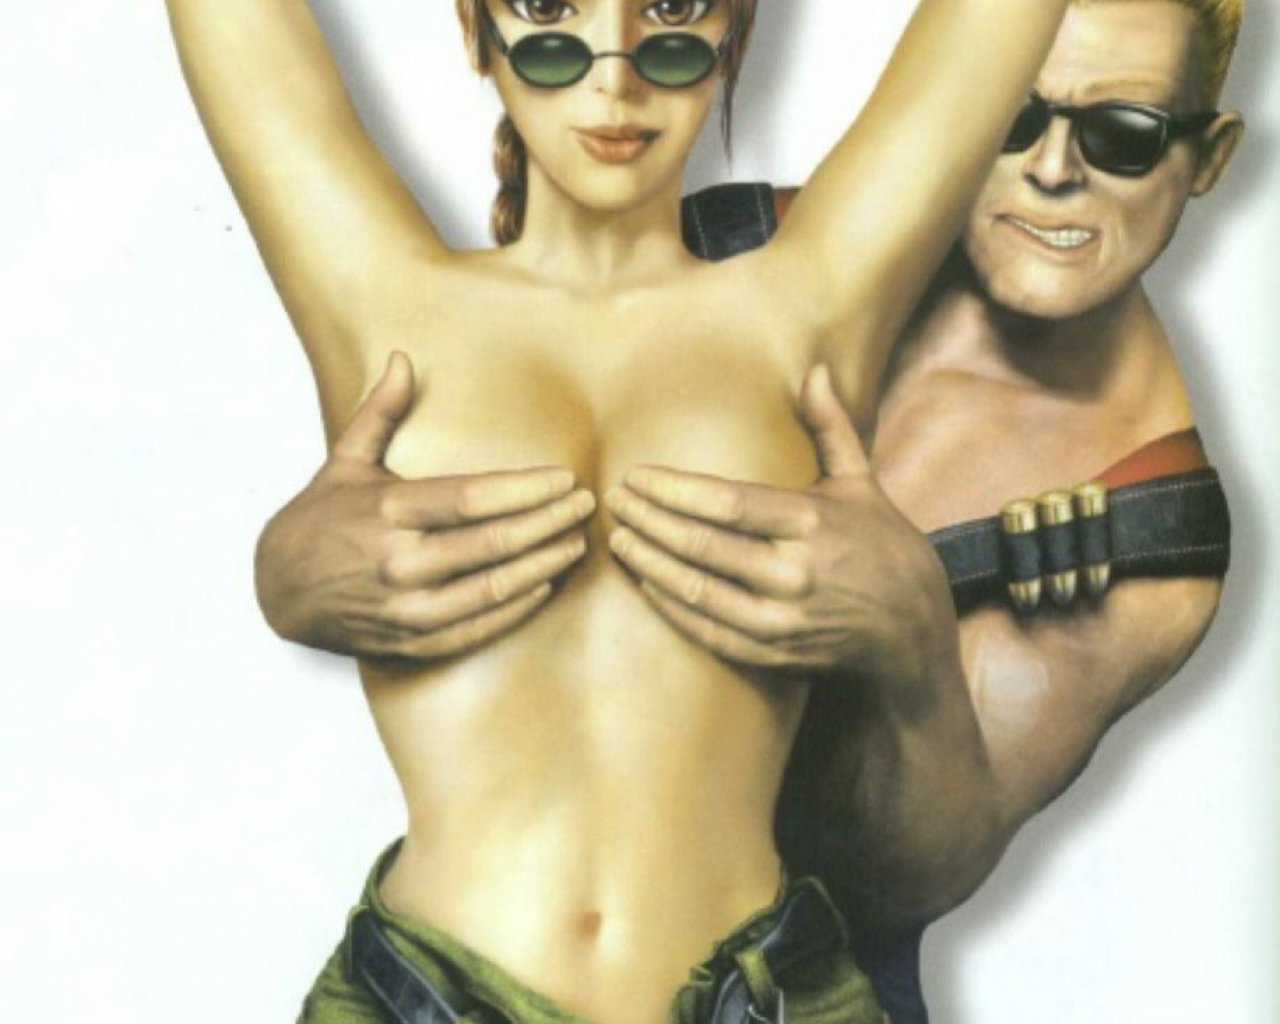 Lara croft nu fake exposed pics